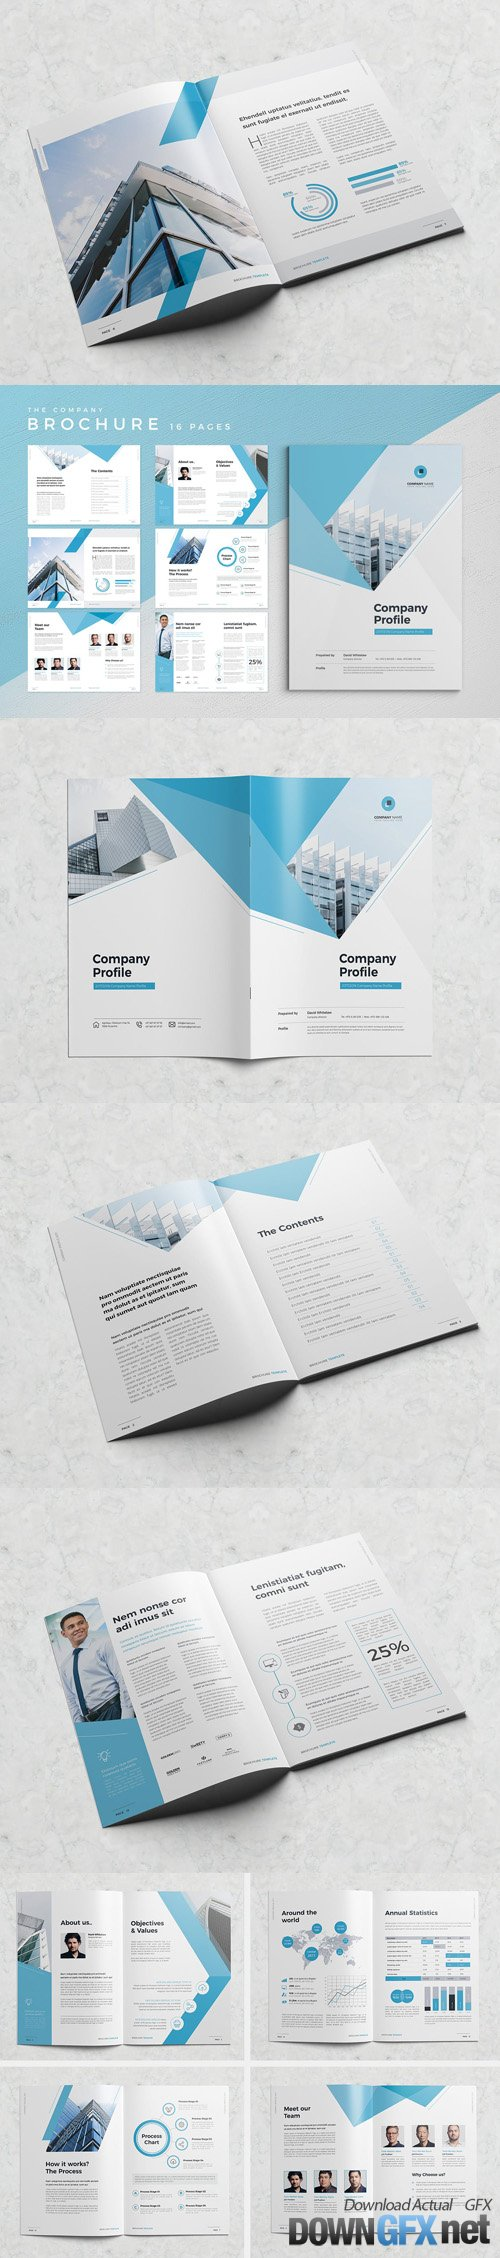 Minimal Company Profile 16 Pages